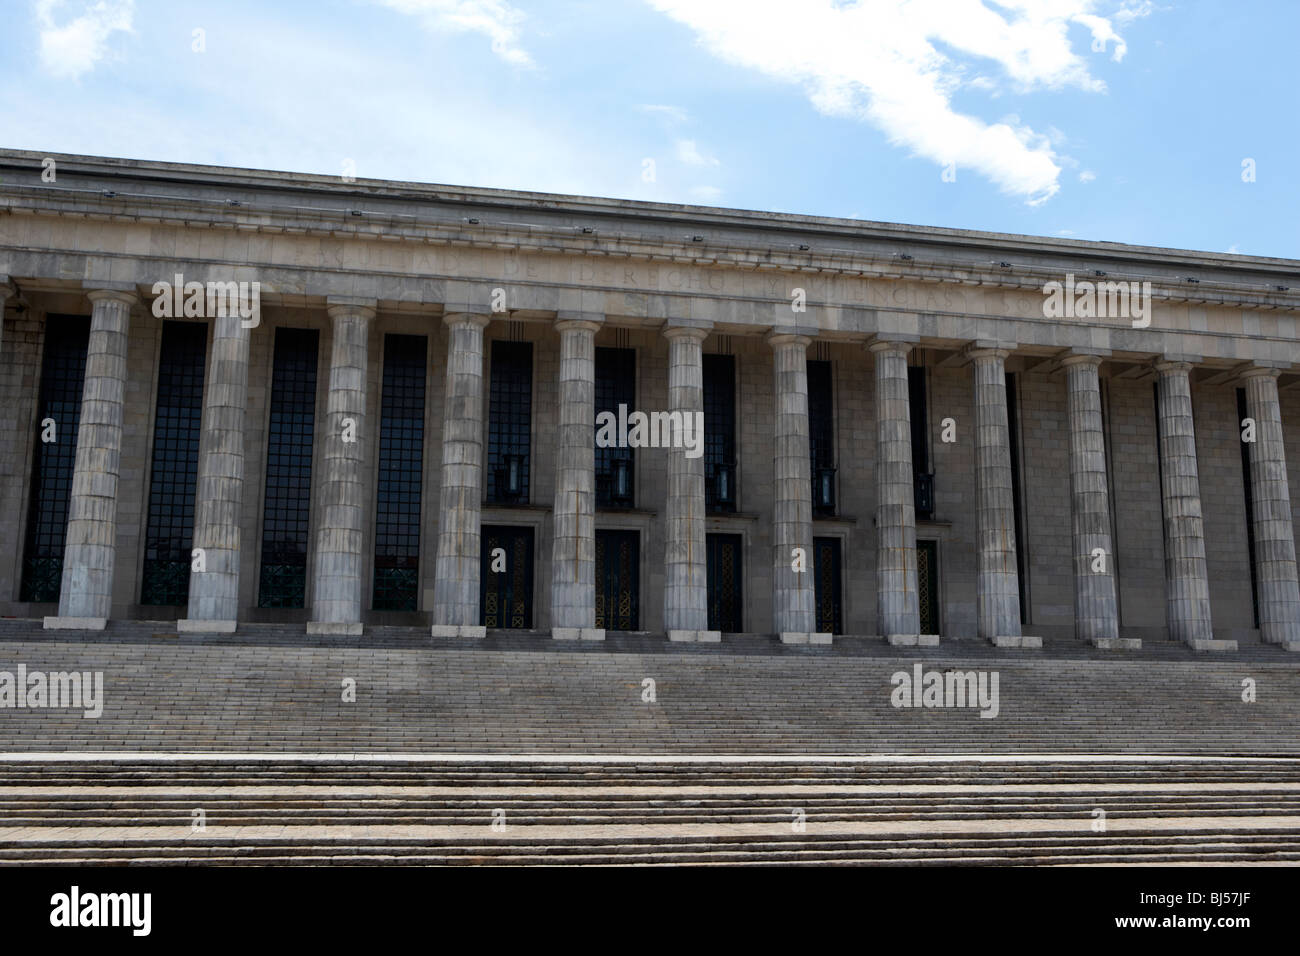 Buenos Aires University laws school of law faculty in recoleta capital federal buenos aires republic of argentina - Stock Image